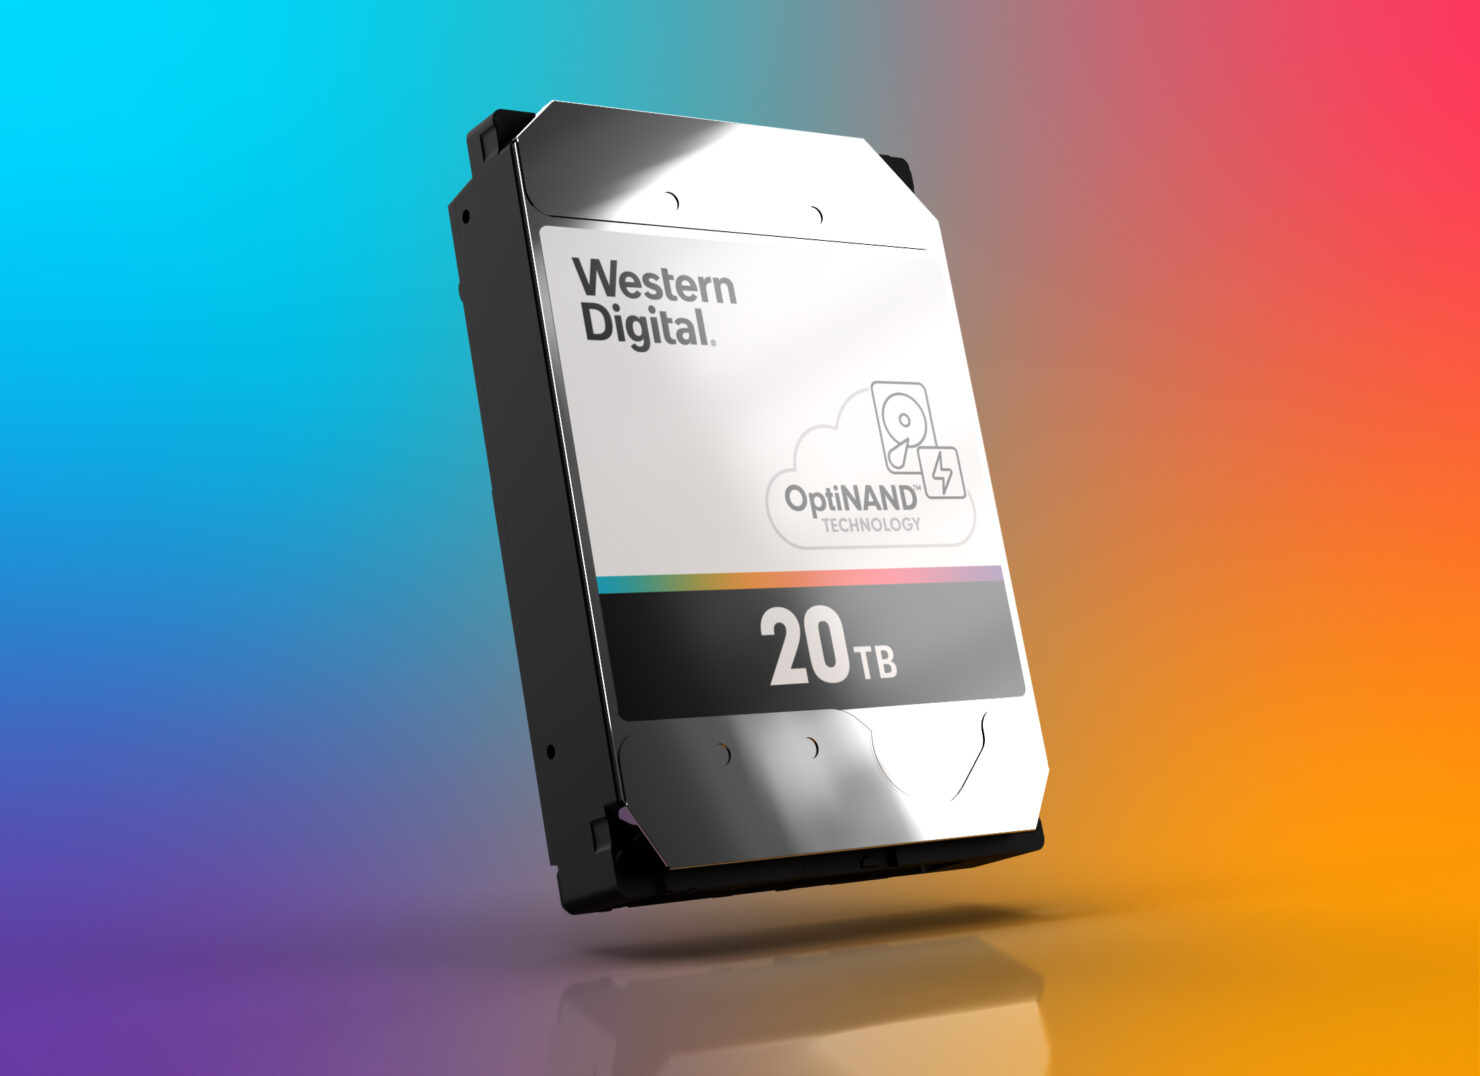 Western Digital Launches 20 TB Mechanical Hard Drive With OptiNAND Technology